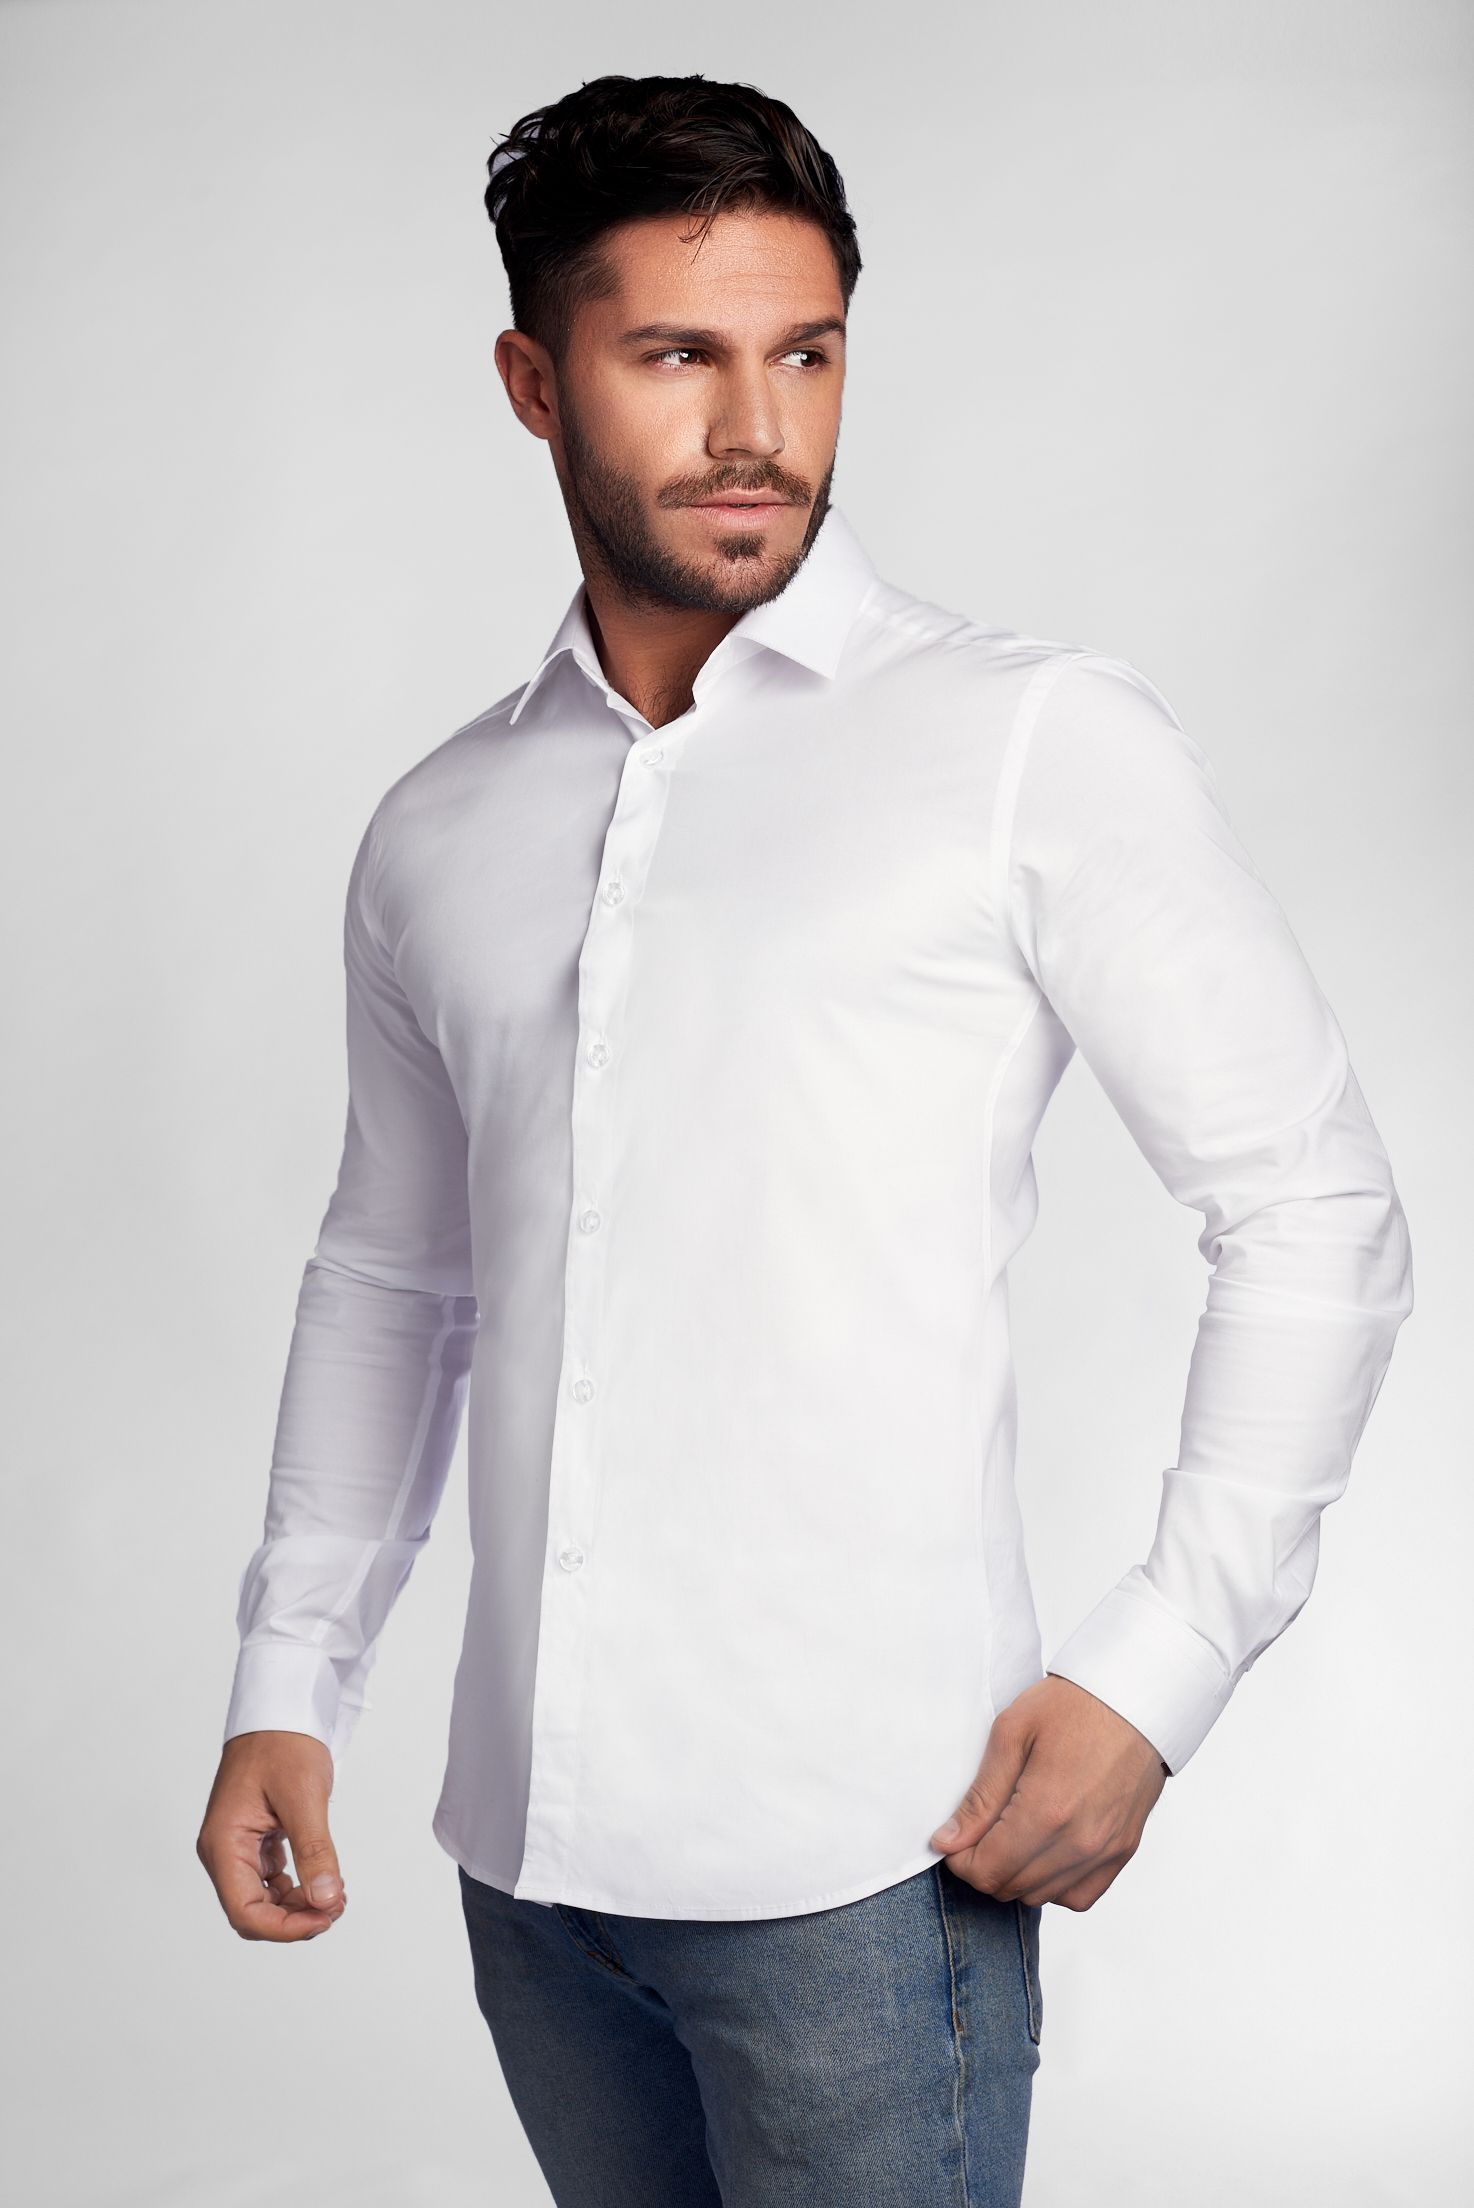 White Tapered Fit Shirt Tapered Fitted Shirts Dress Shirts